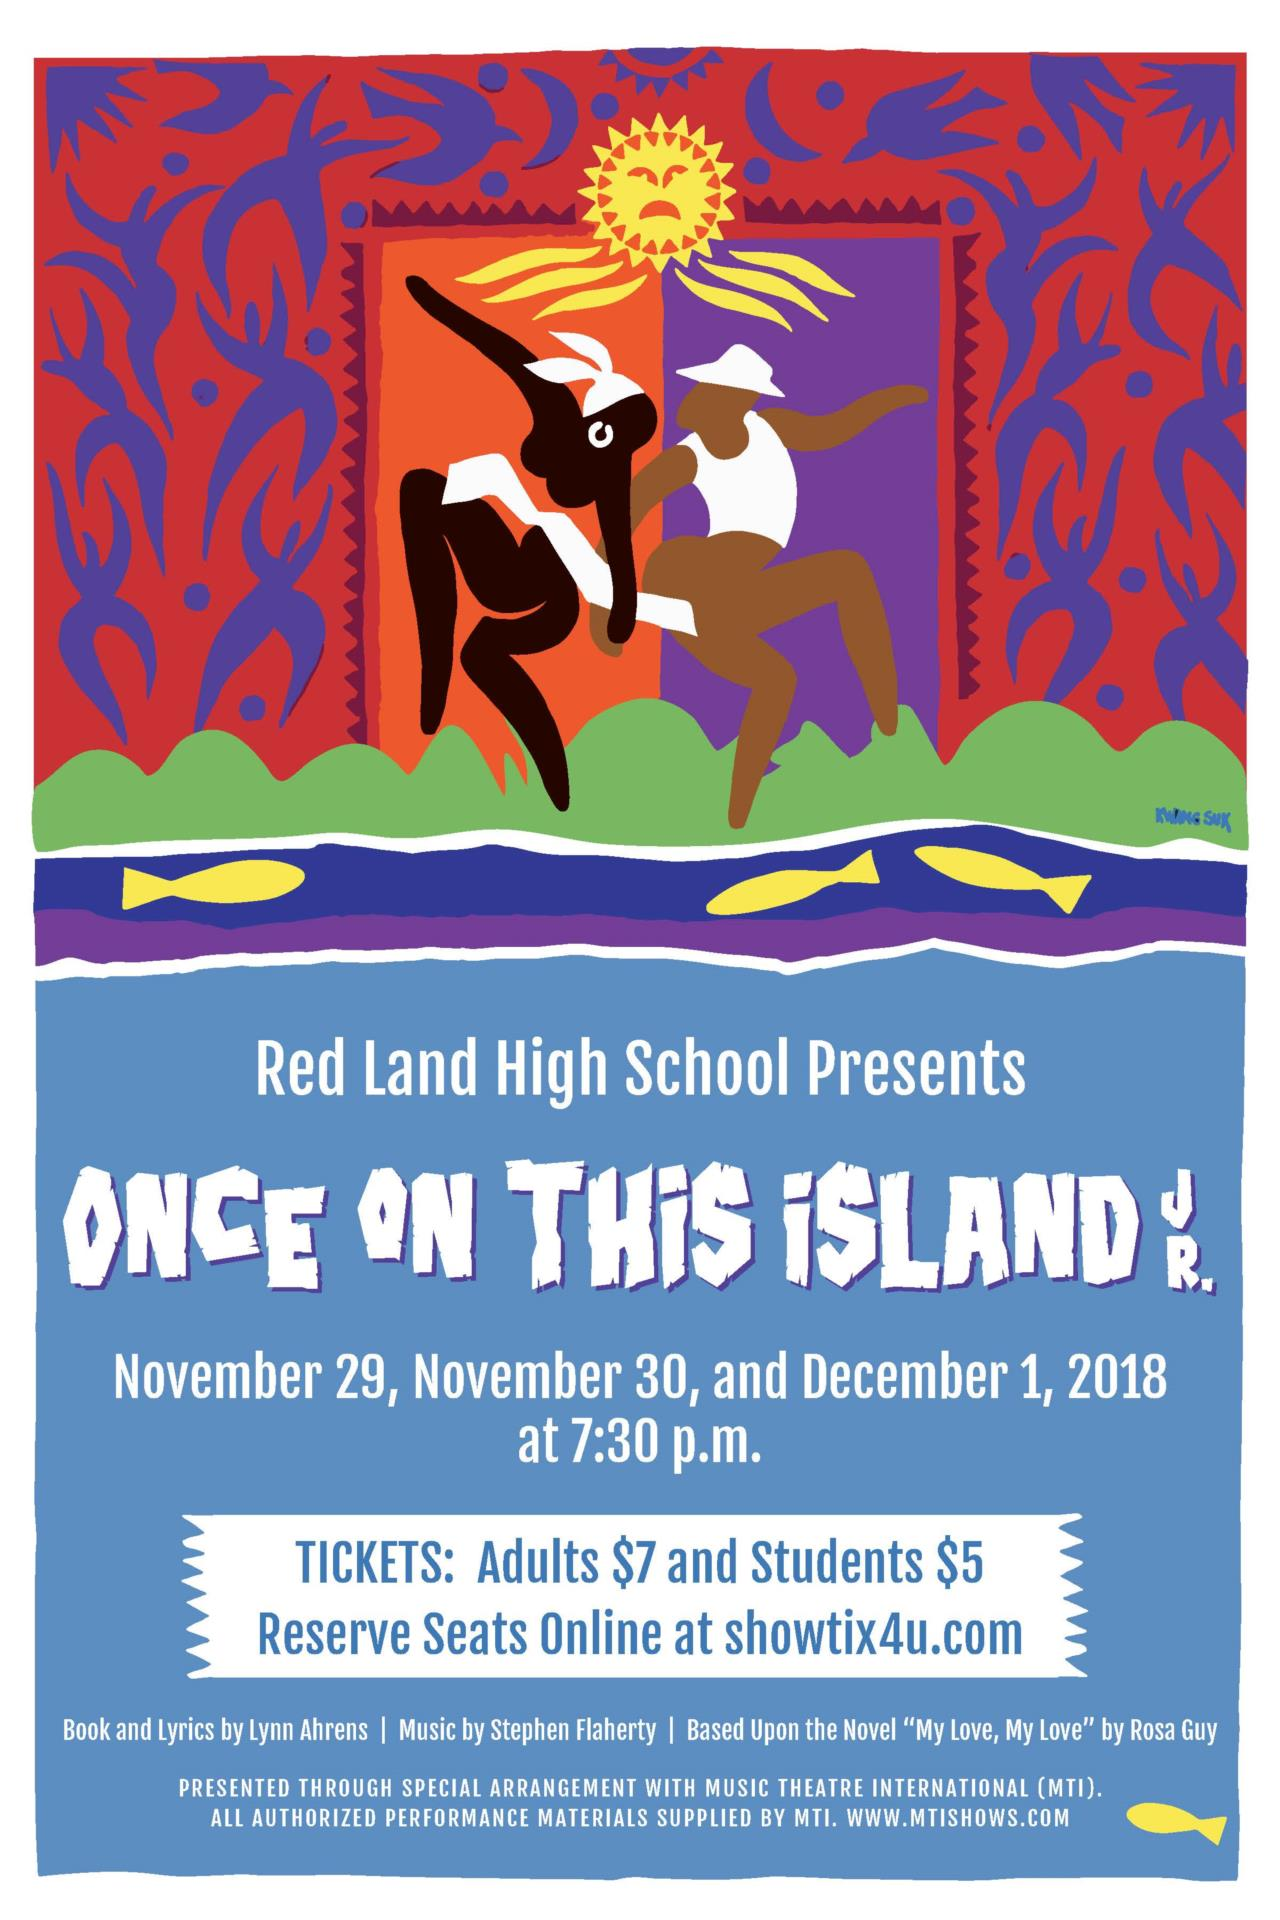 RL Once on this Island Play Poster